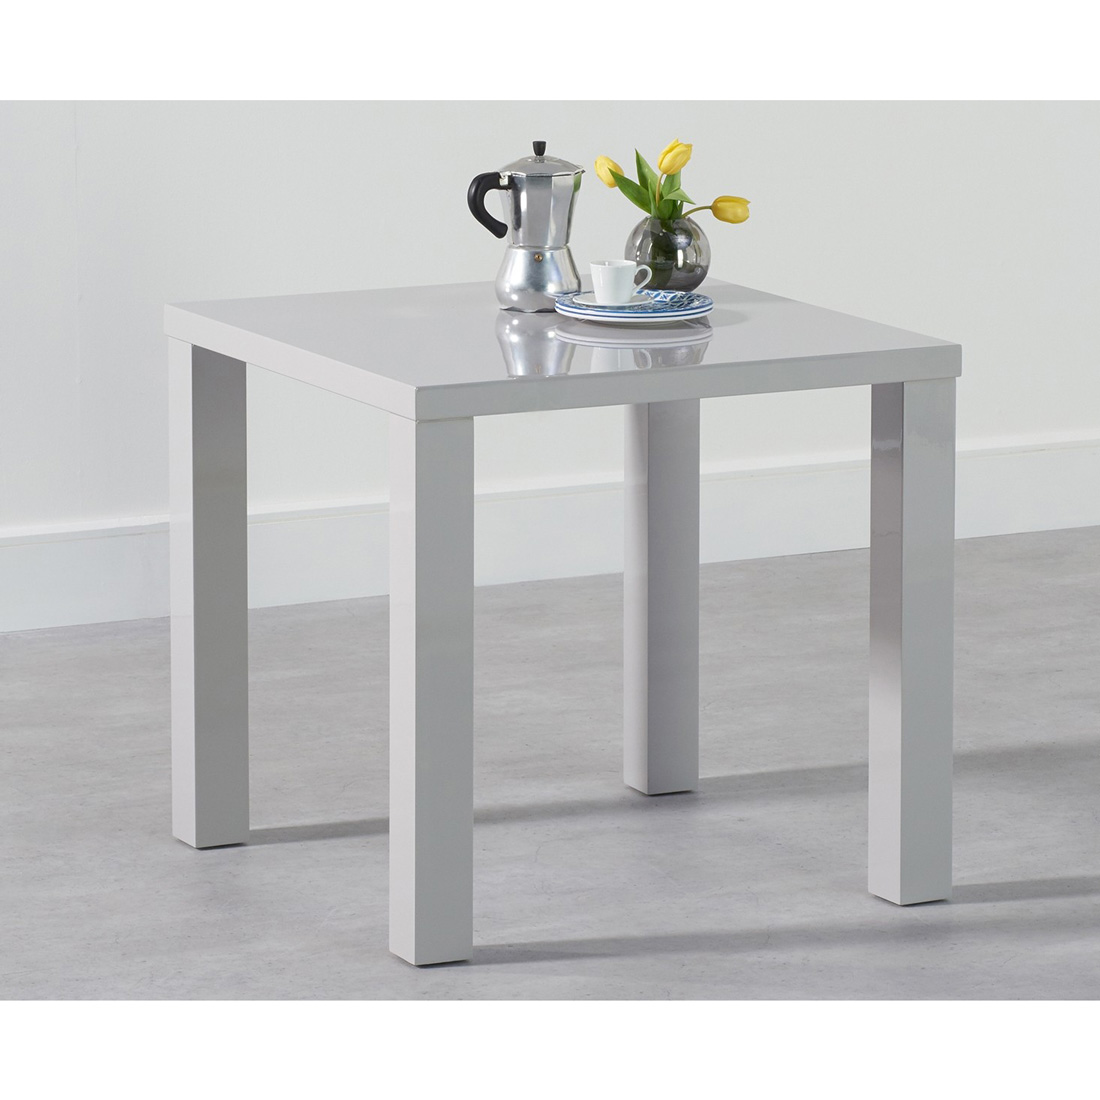 White High Gloss Coffee Table 85 Cm: Luna Square Gloss Dining Table Light Grey